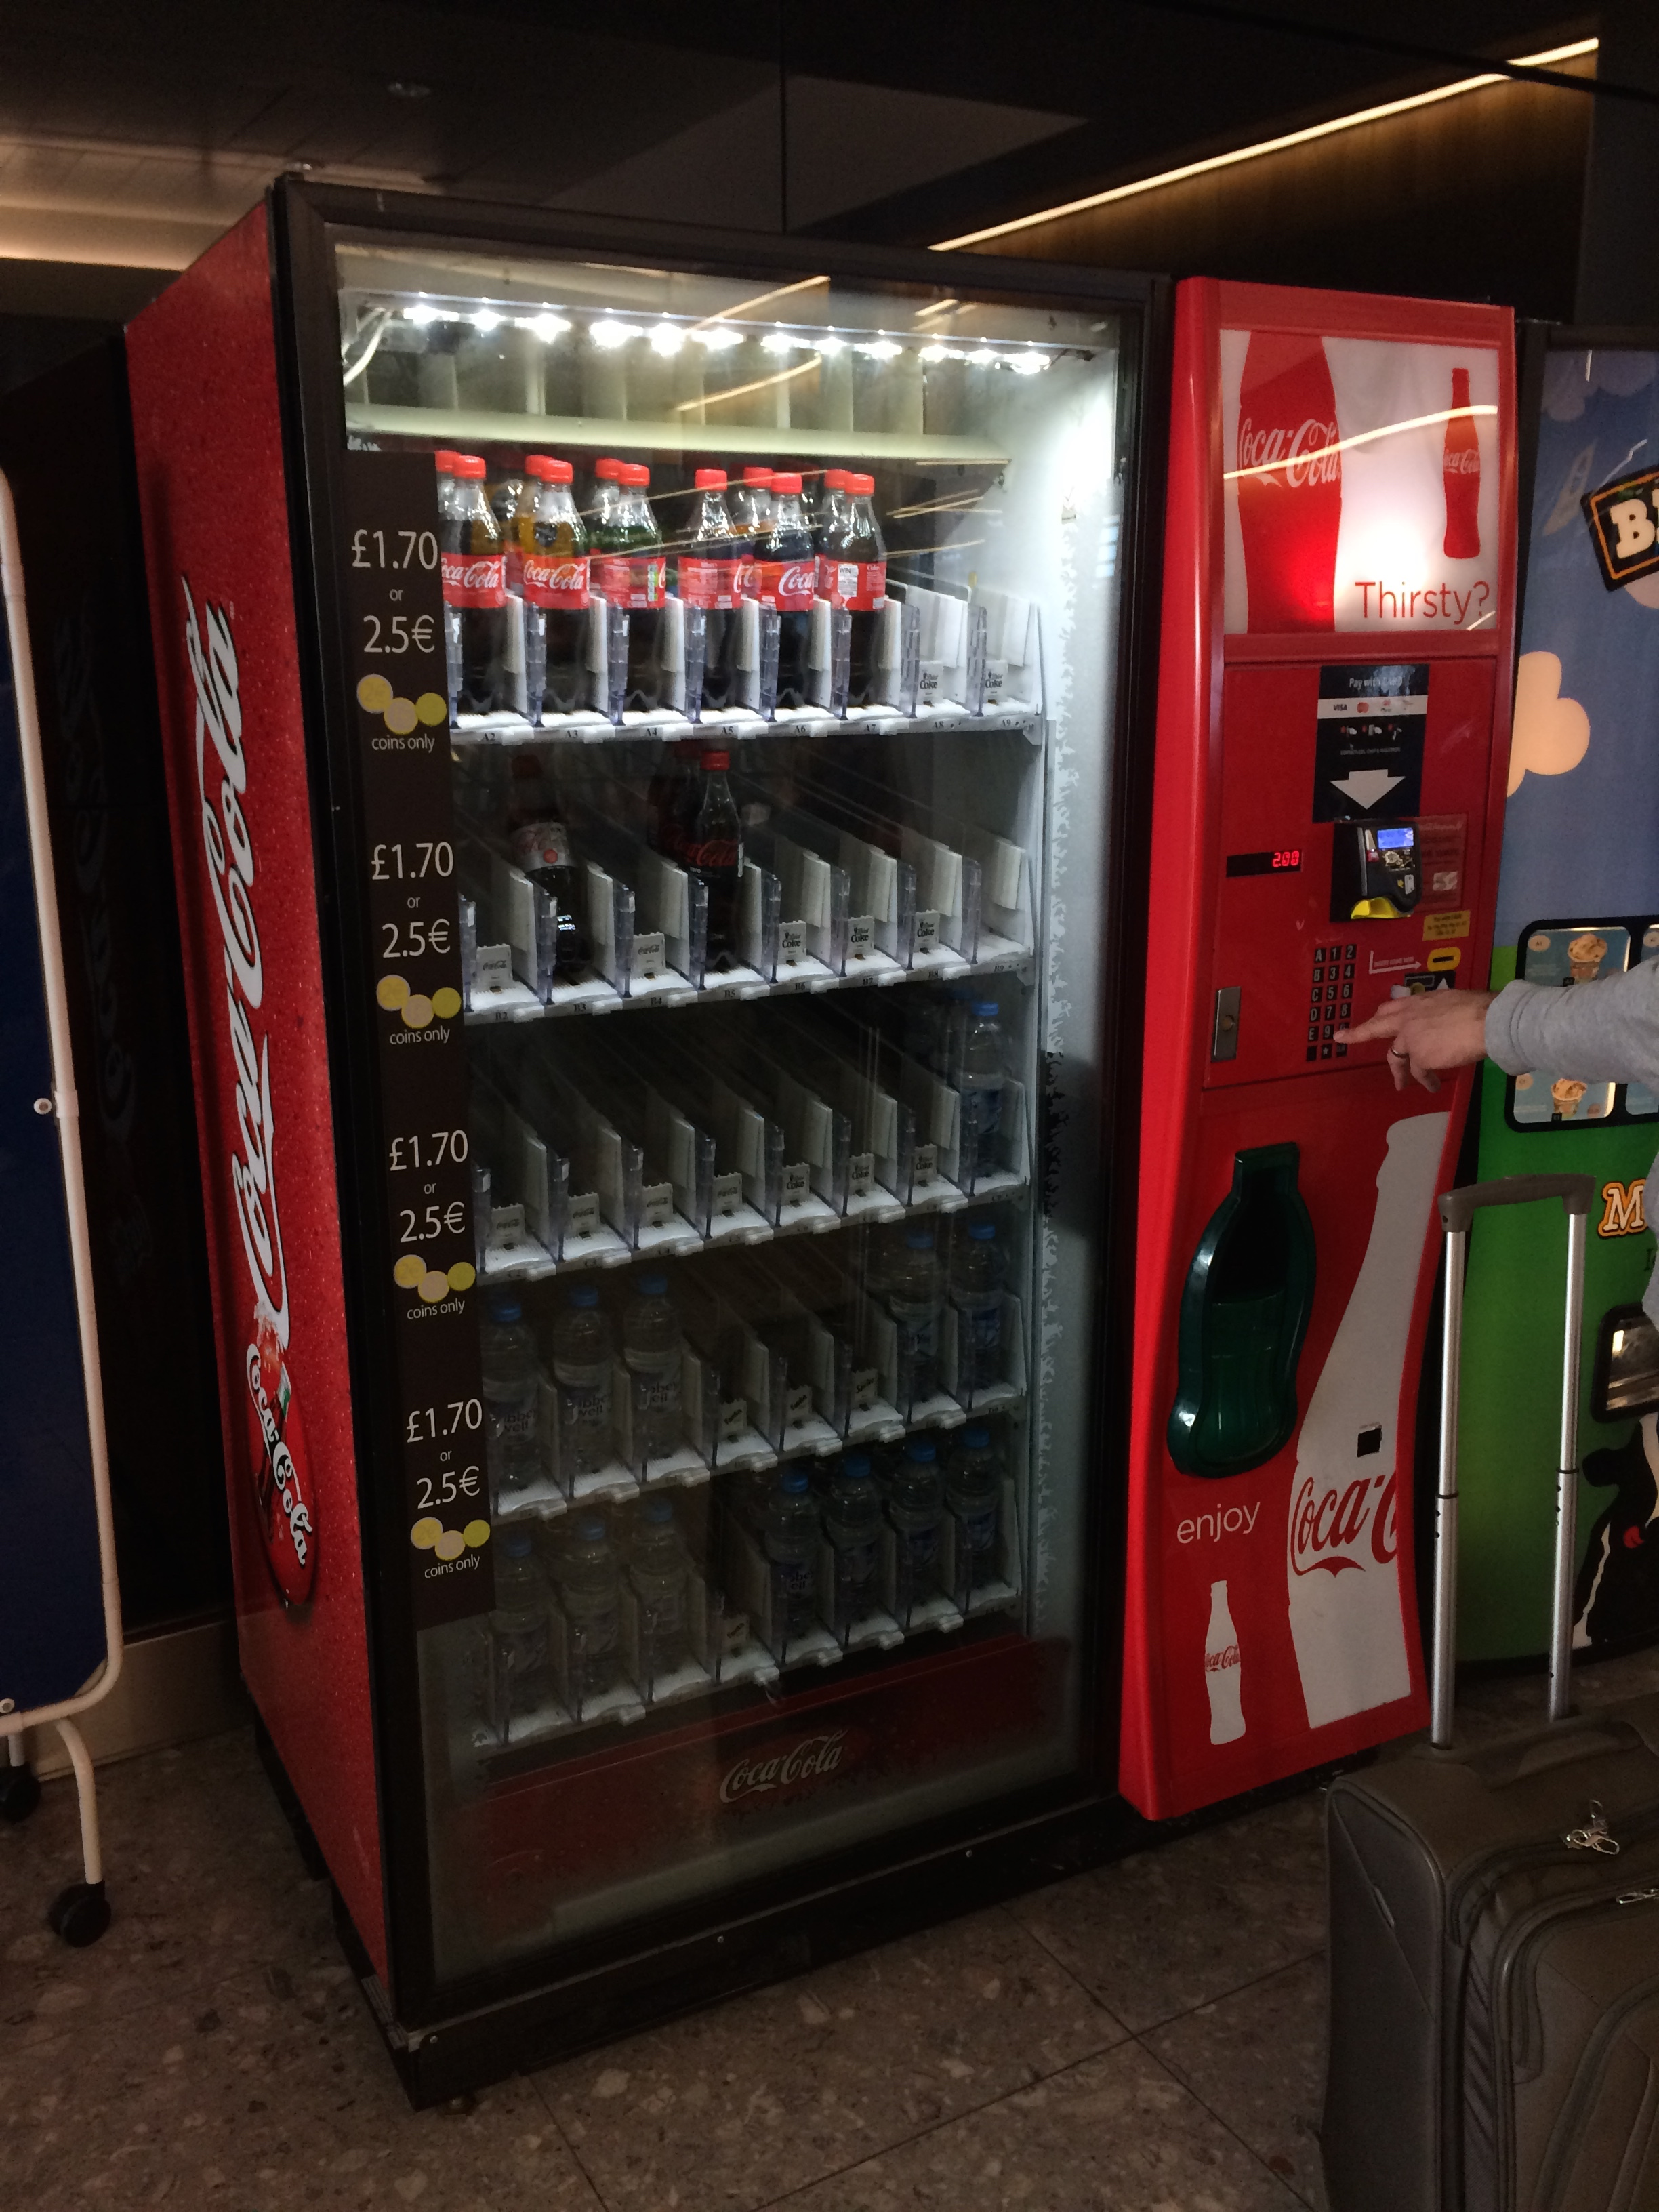 With a smile I passed this drink vending machine…Coca-Cola is really omnipresent! :)